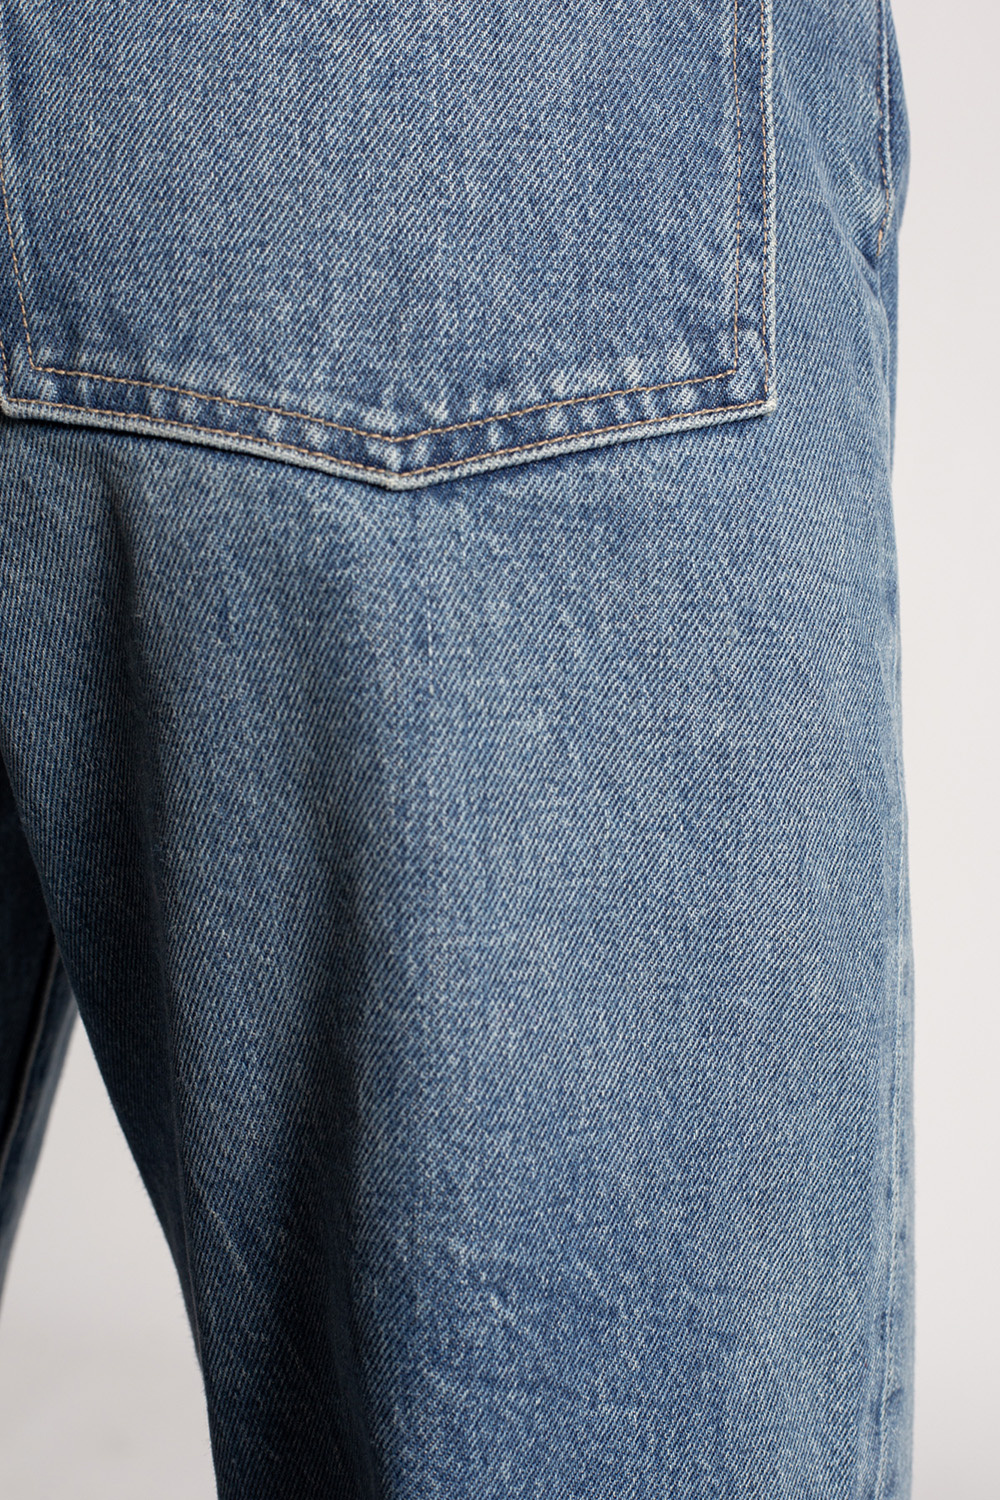 Levi's Jeans 'Made & Crafted ®' collection